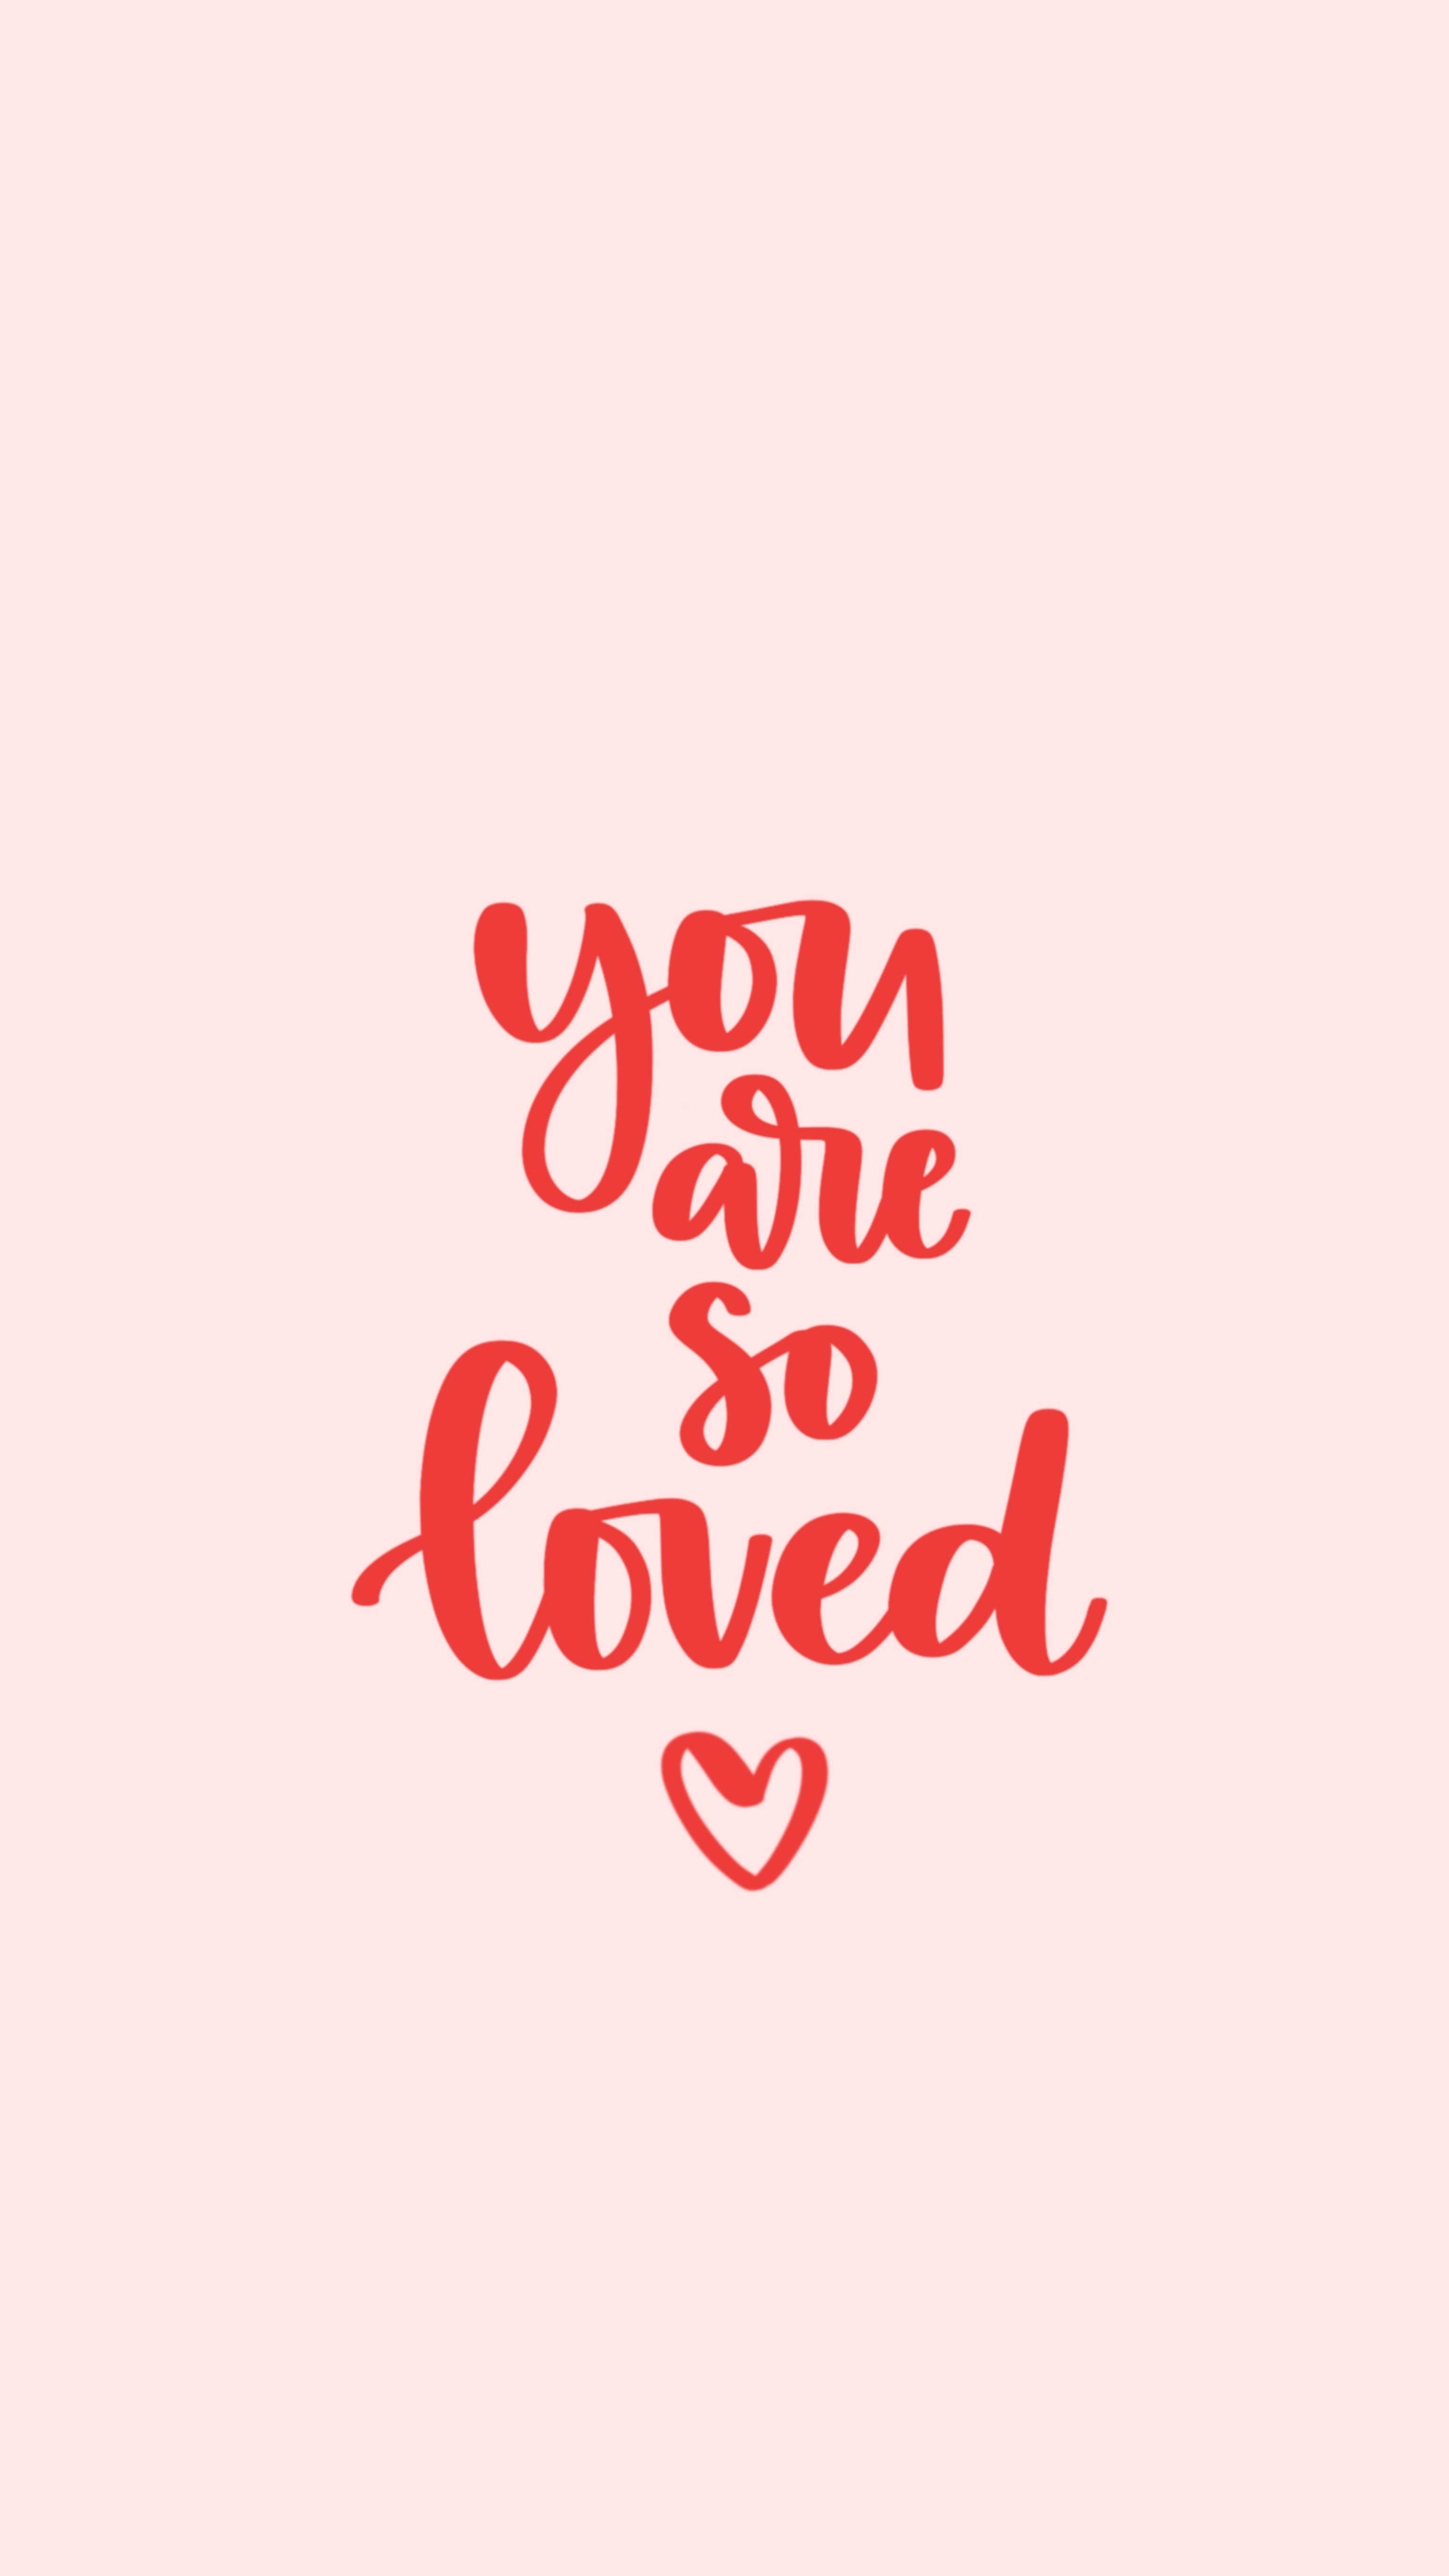 You Are So Loved Calligraphy Quote Inspirational Red And Pink Mobile Wallpaper Phone Scr Iphone Wallpaper Quotes Inspirational Red Quotes Pink Quotes